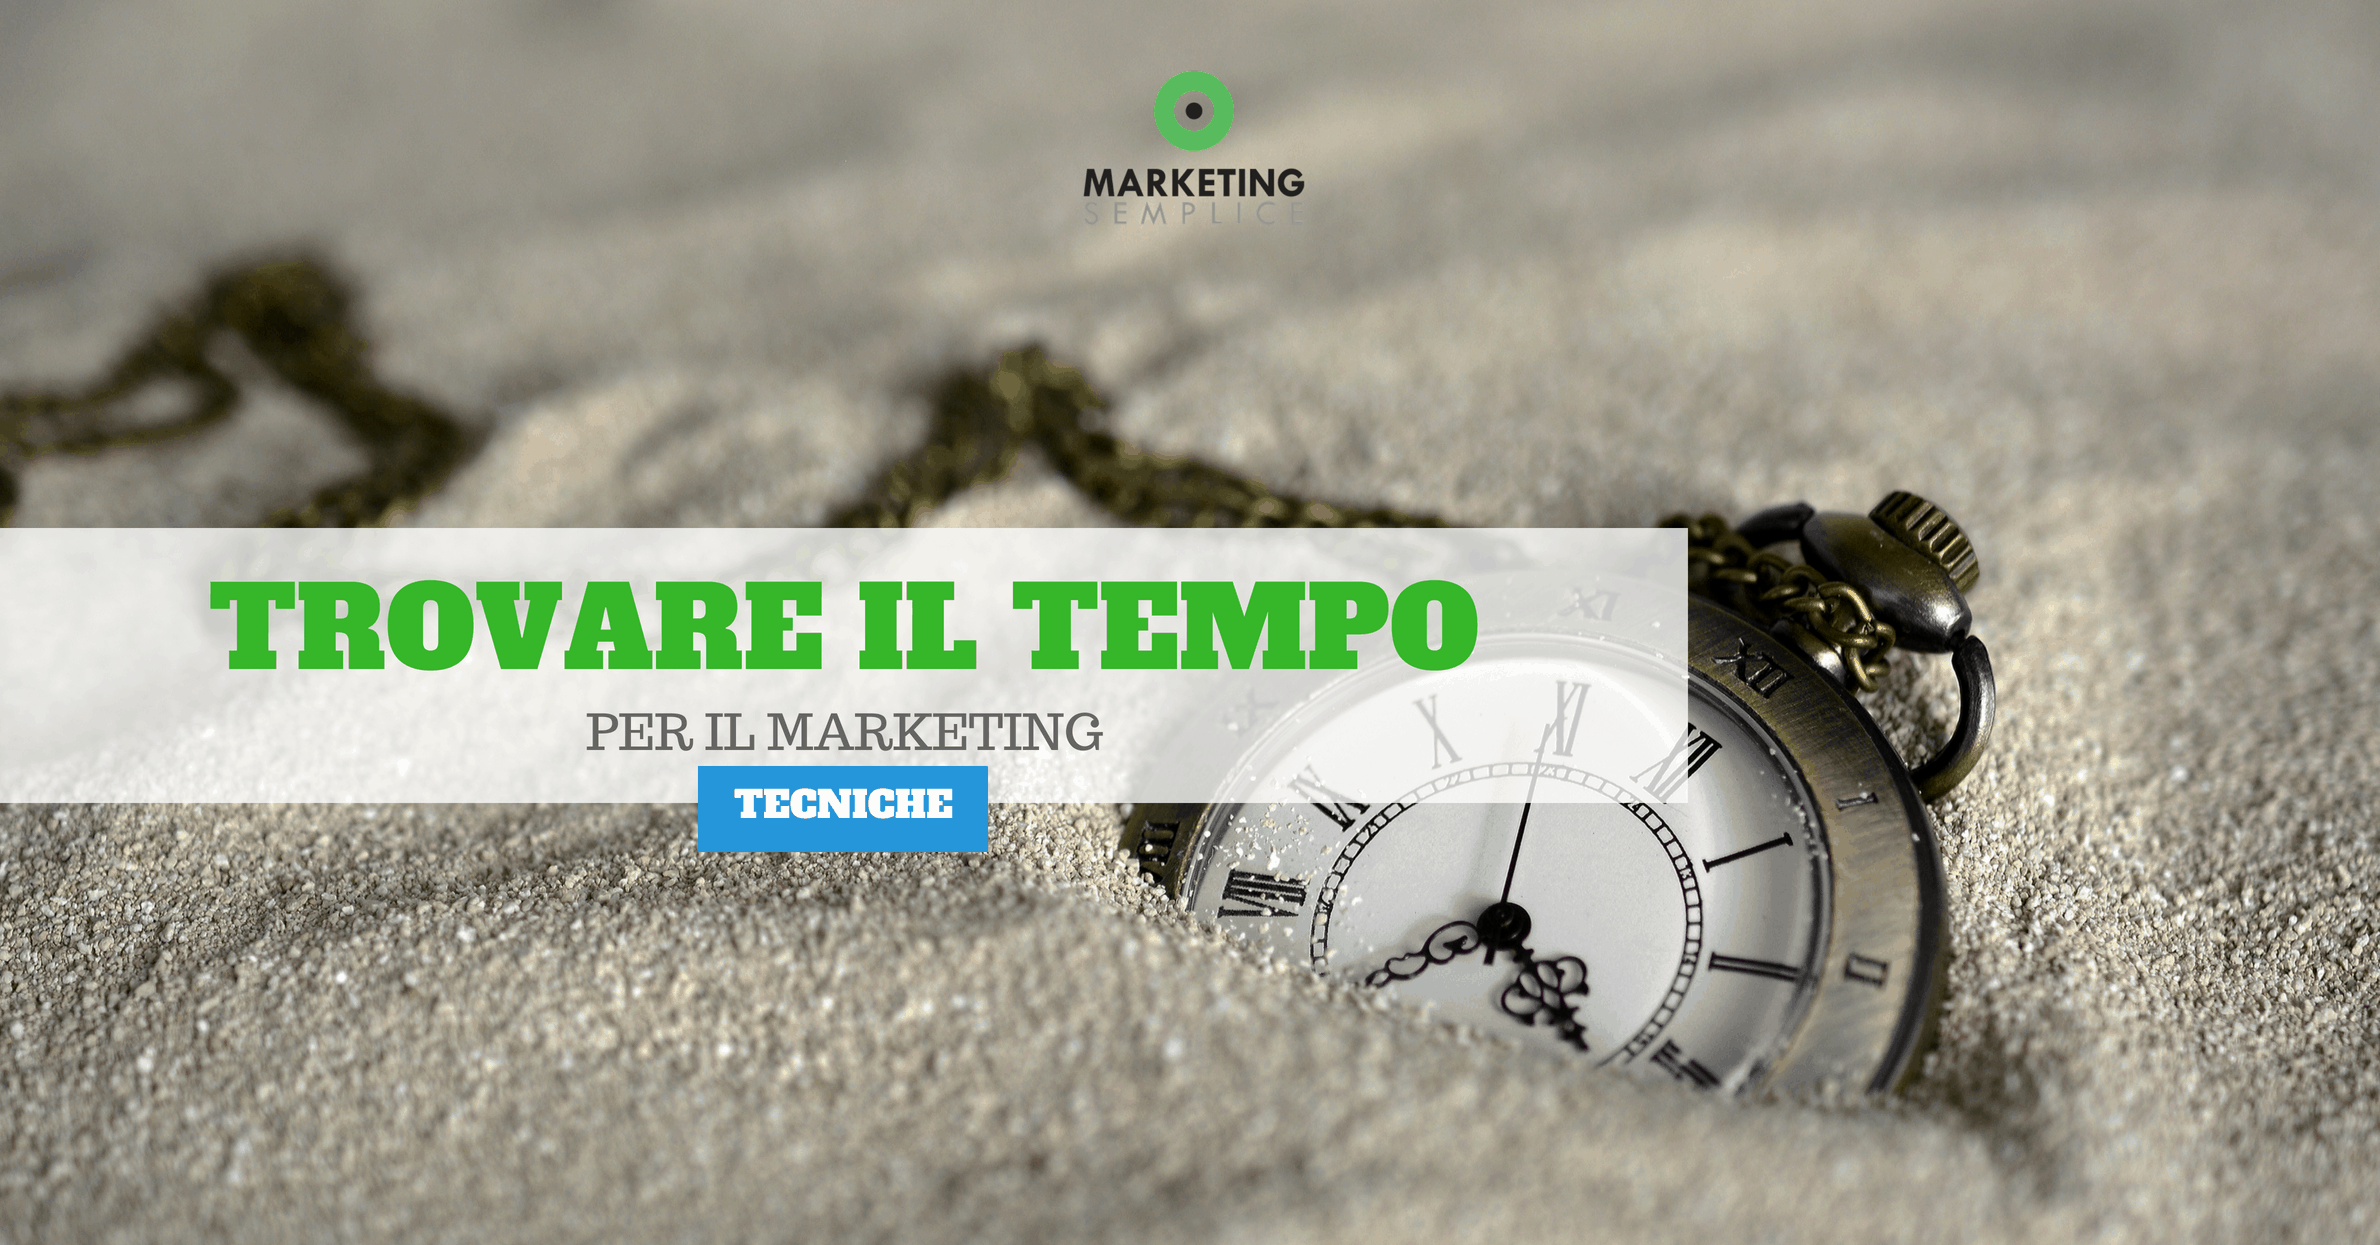 Come Trovare il Tempo per il Marketing [Tecniche Efficaci]